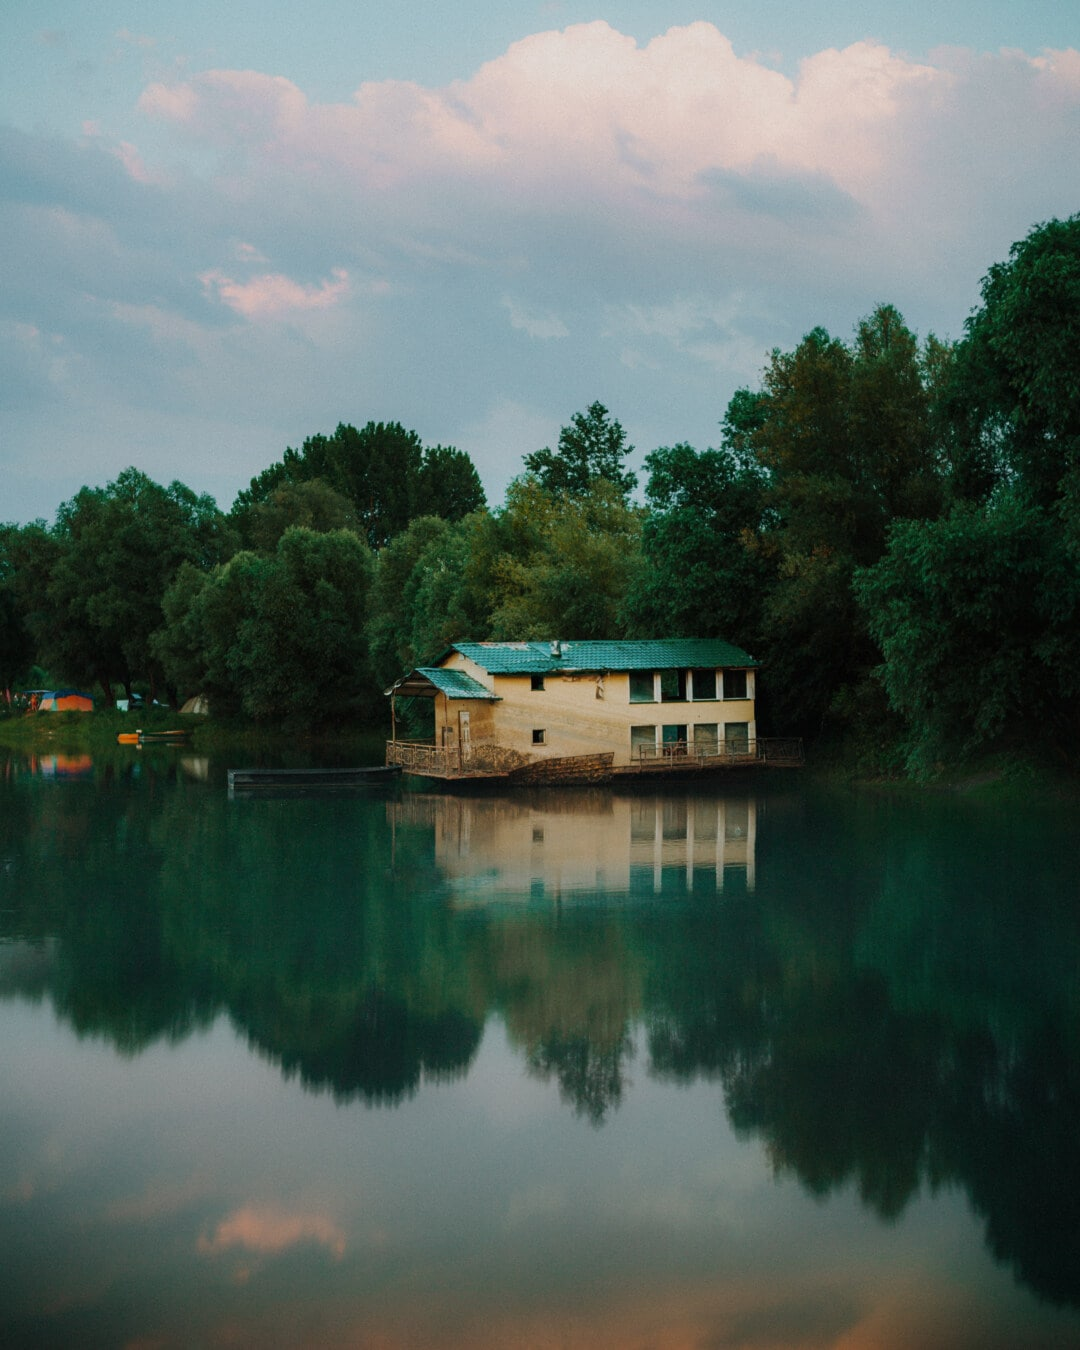 decay, abandoned, boathouse, resort area, camping, tent, lake, water, river, reflection